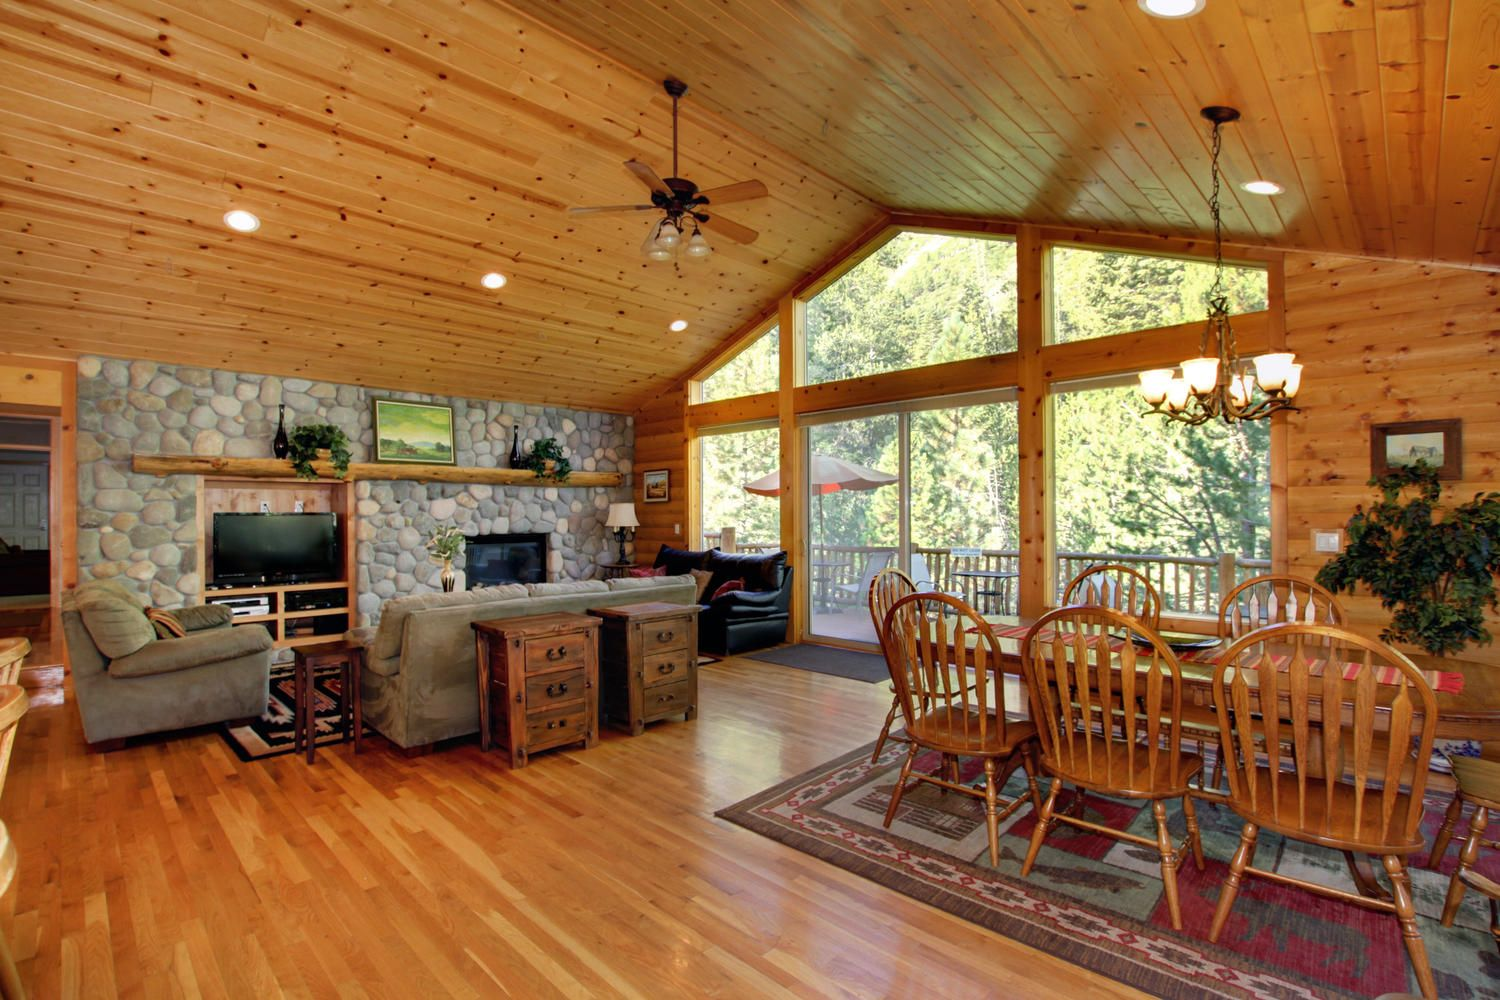 Rustic Wood Ceiling And Walls | Lake Tahoe Vacation Rentals 4100 Sq Ft  Luxurious Log Home